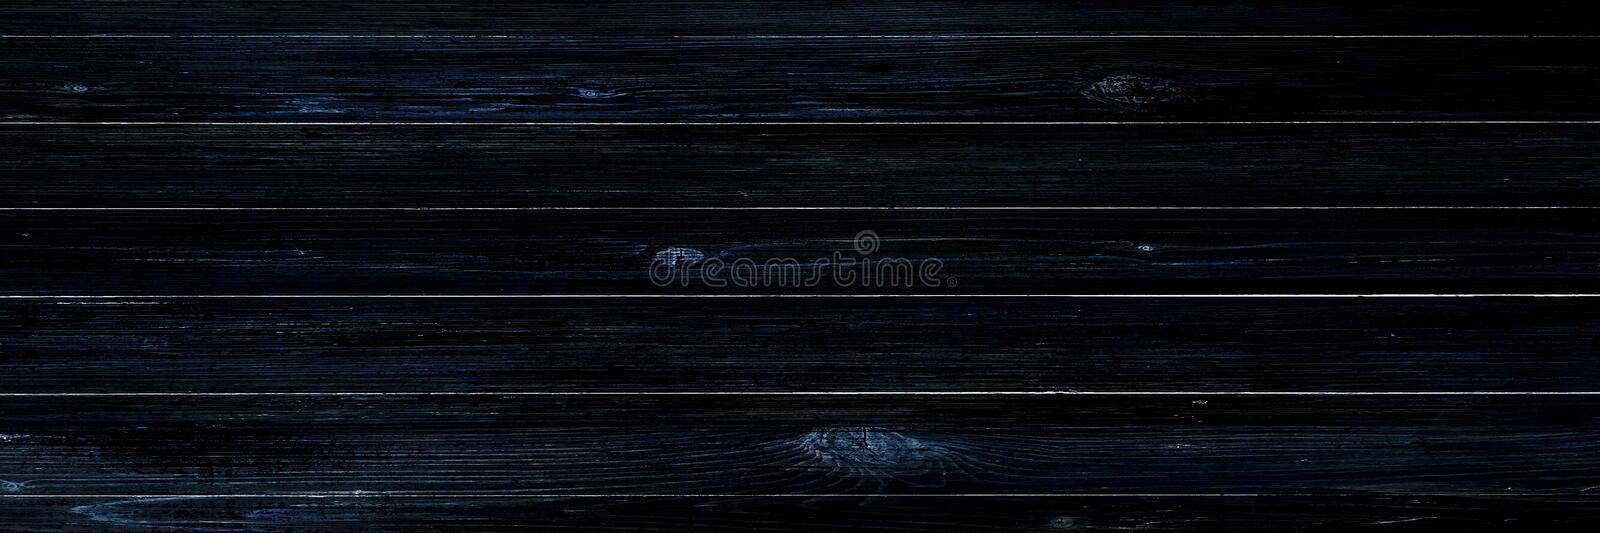 Black wood texture, dark wooden abstract background royalty free stock photography